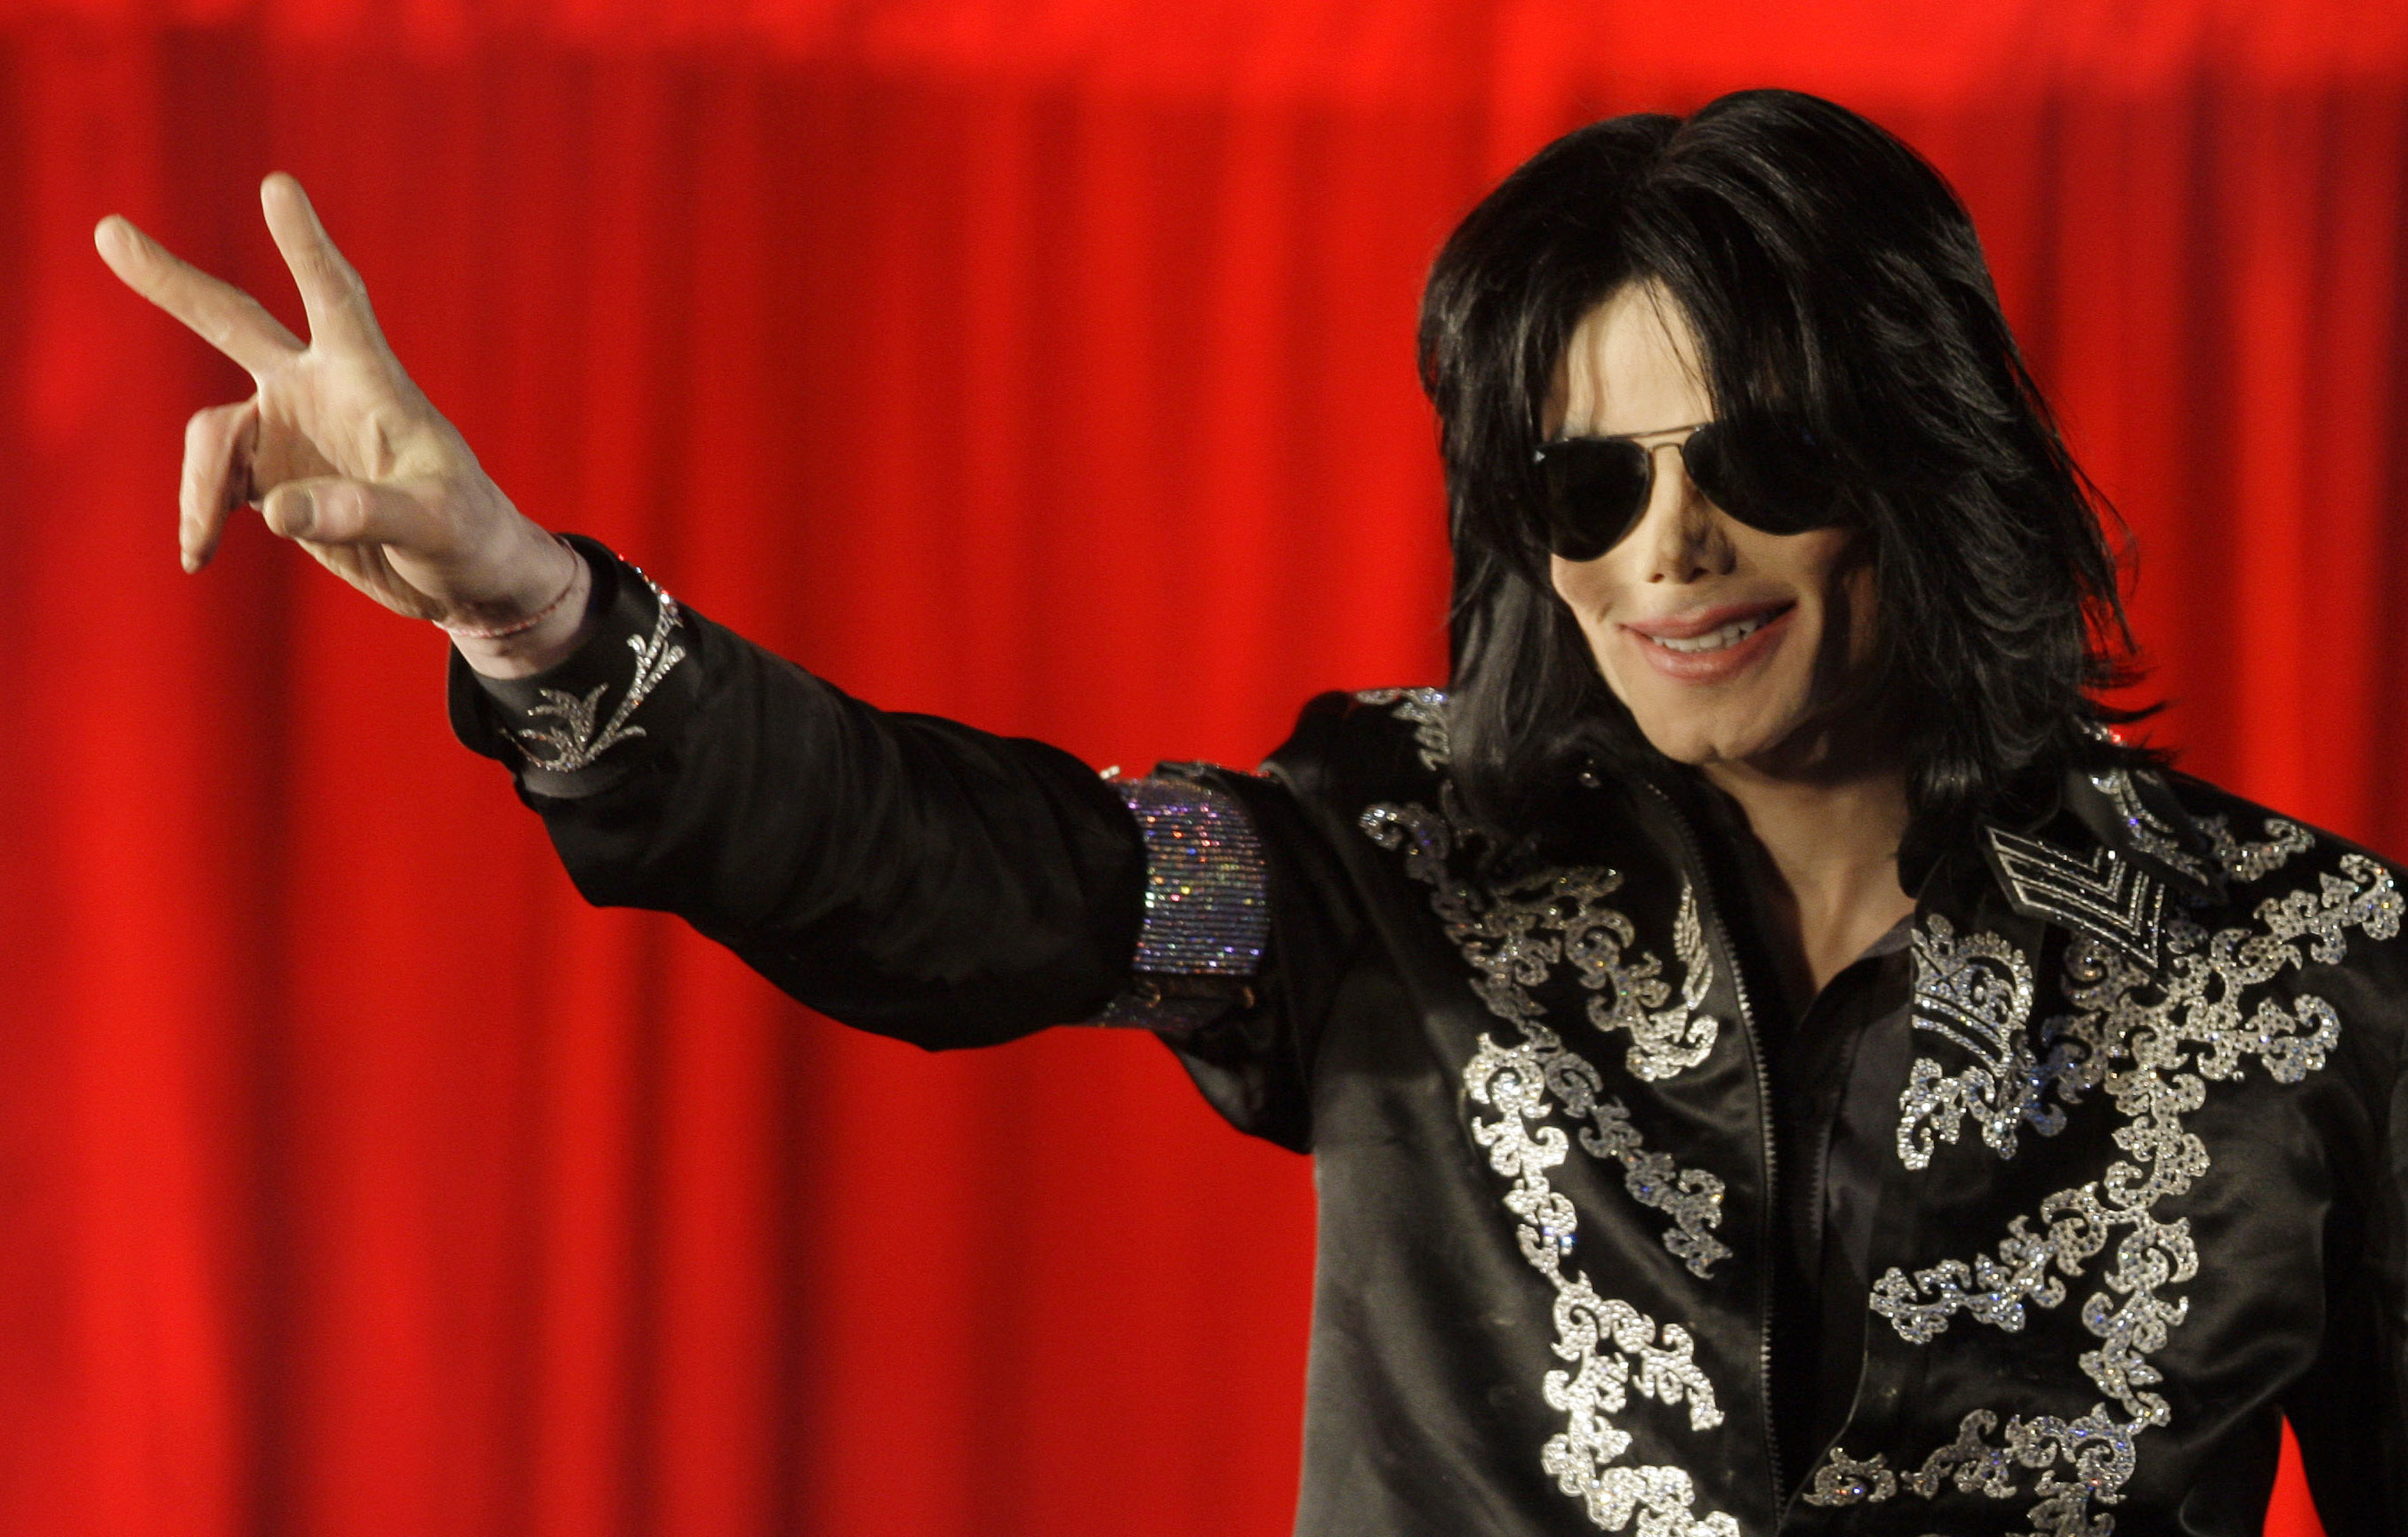 FILE - In this March 5, 2009, file photo, Michael Jackson appears at an event to announce a series of concerts in London. Forbes announced on Oct. 30, 2017, that Jackson topped its list of highest-earning dead celebrities. (AP Photo/Joel Ryan, File)